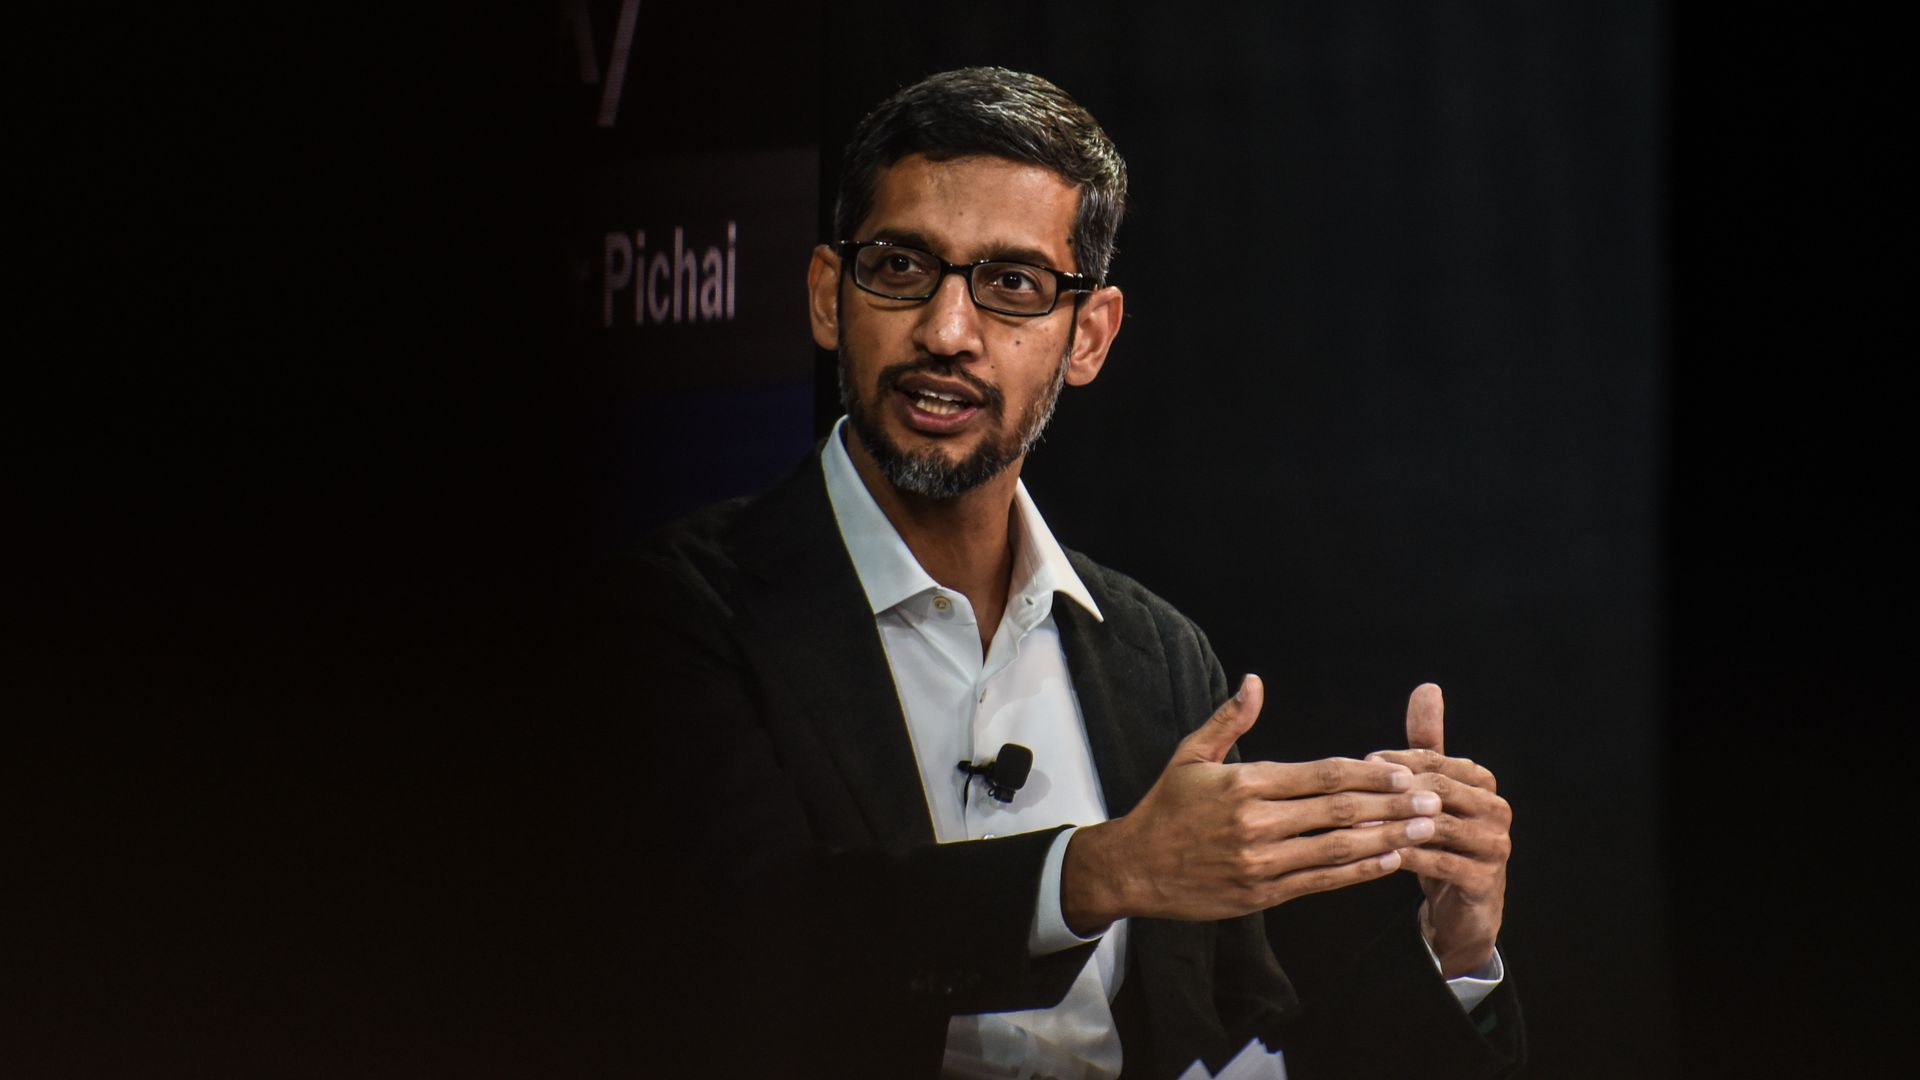 Google CEO Pichai Calls For A More Global Internet Amid India's Data Protection Push